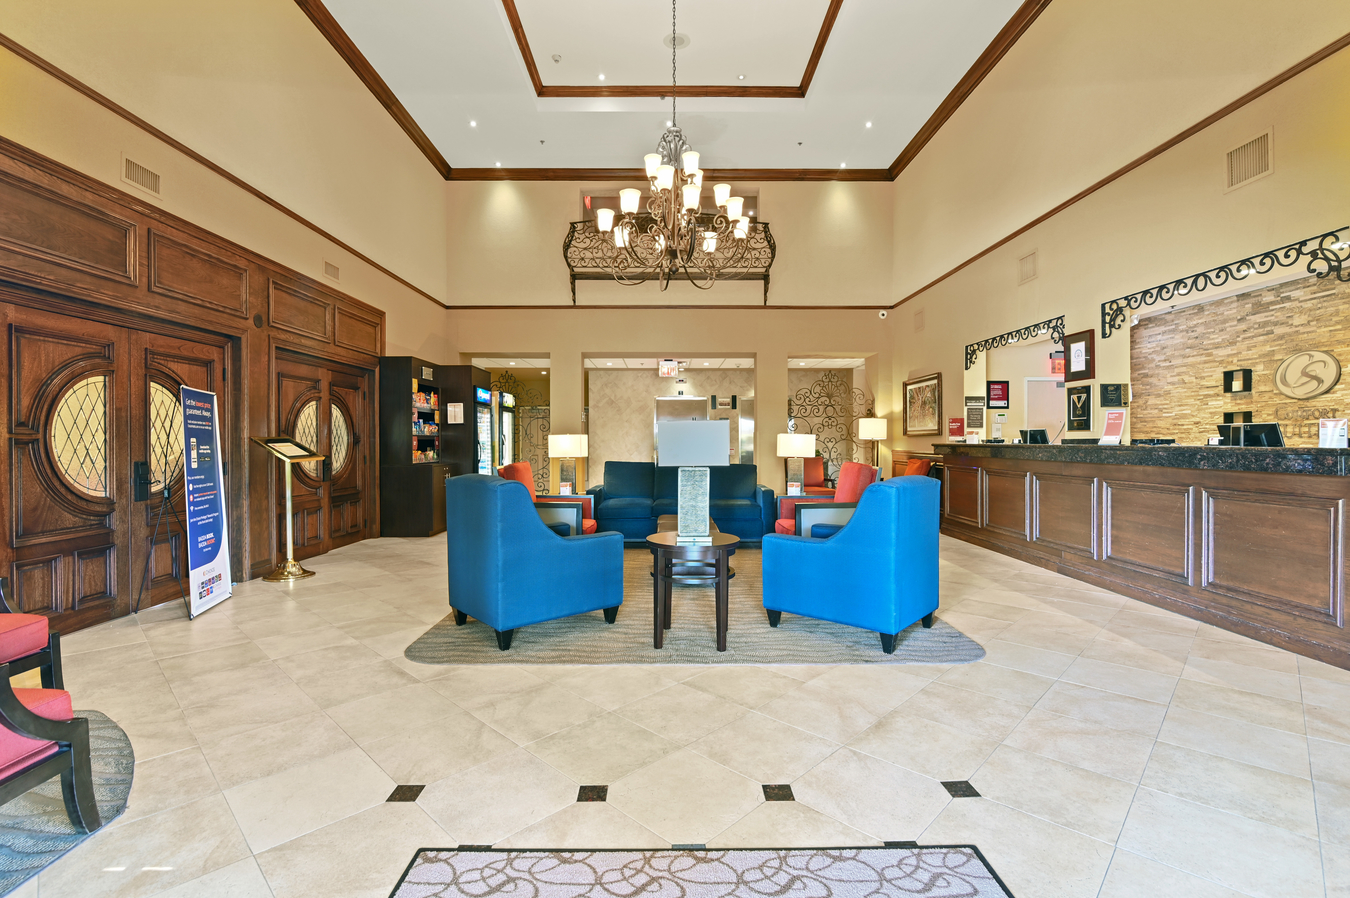 Slider Image - Reception area